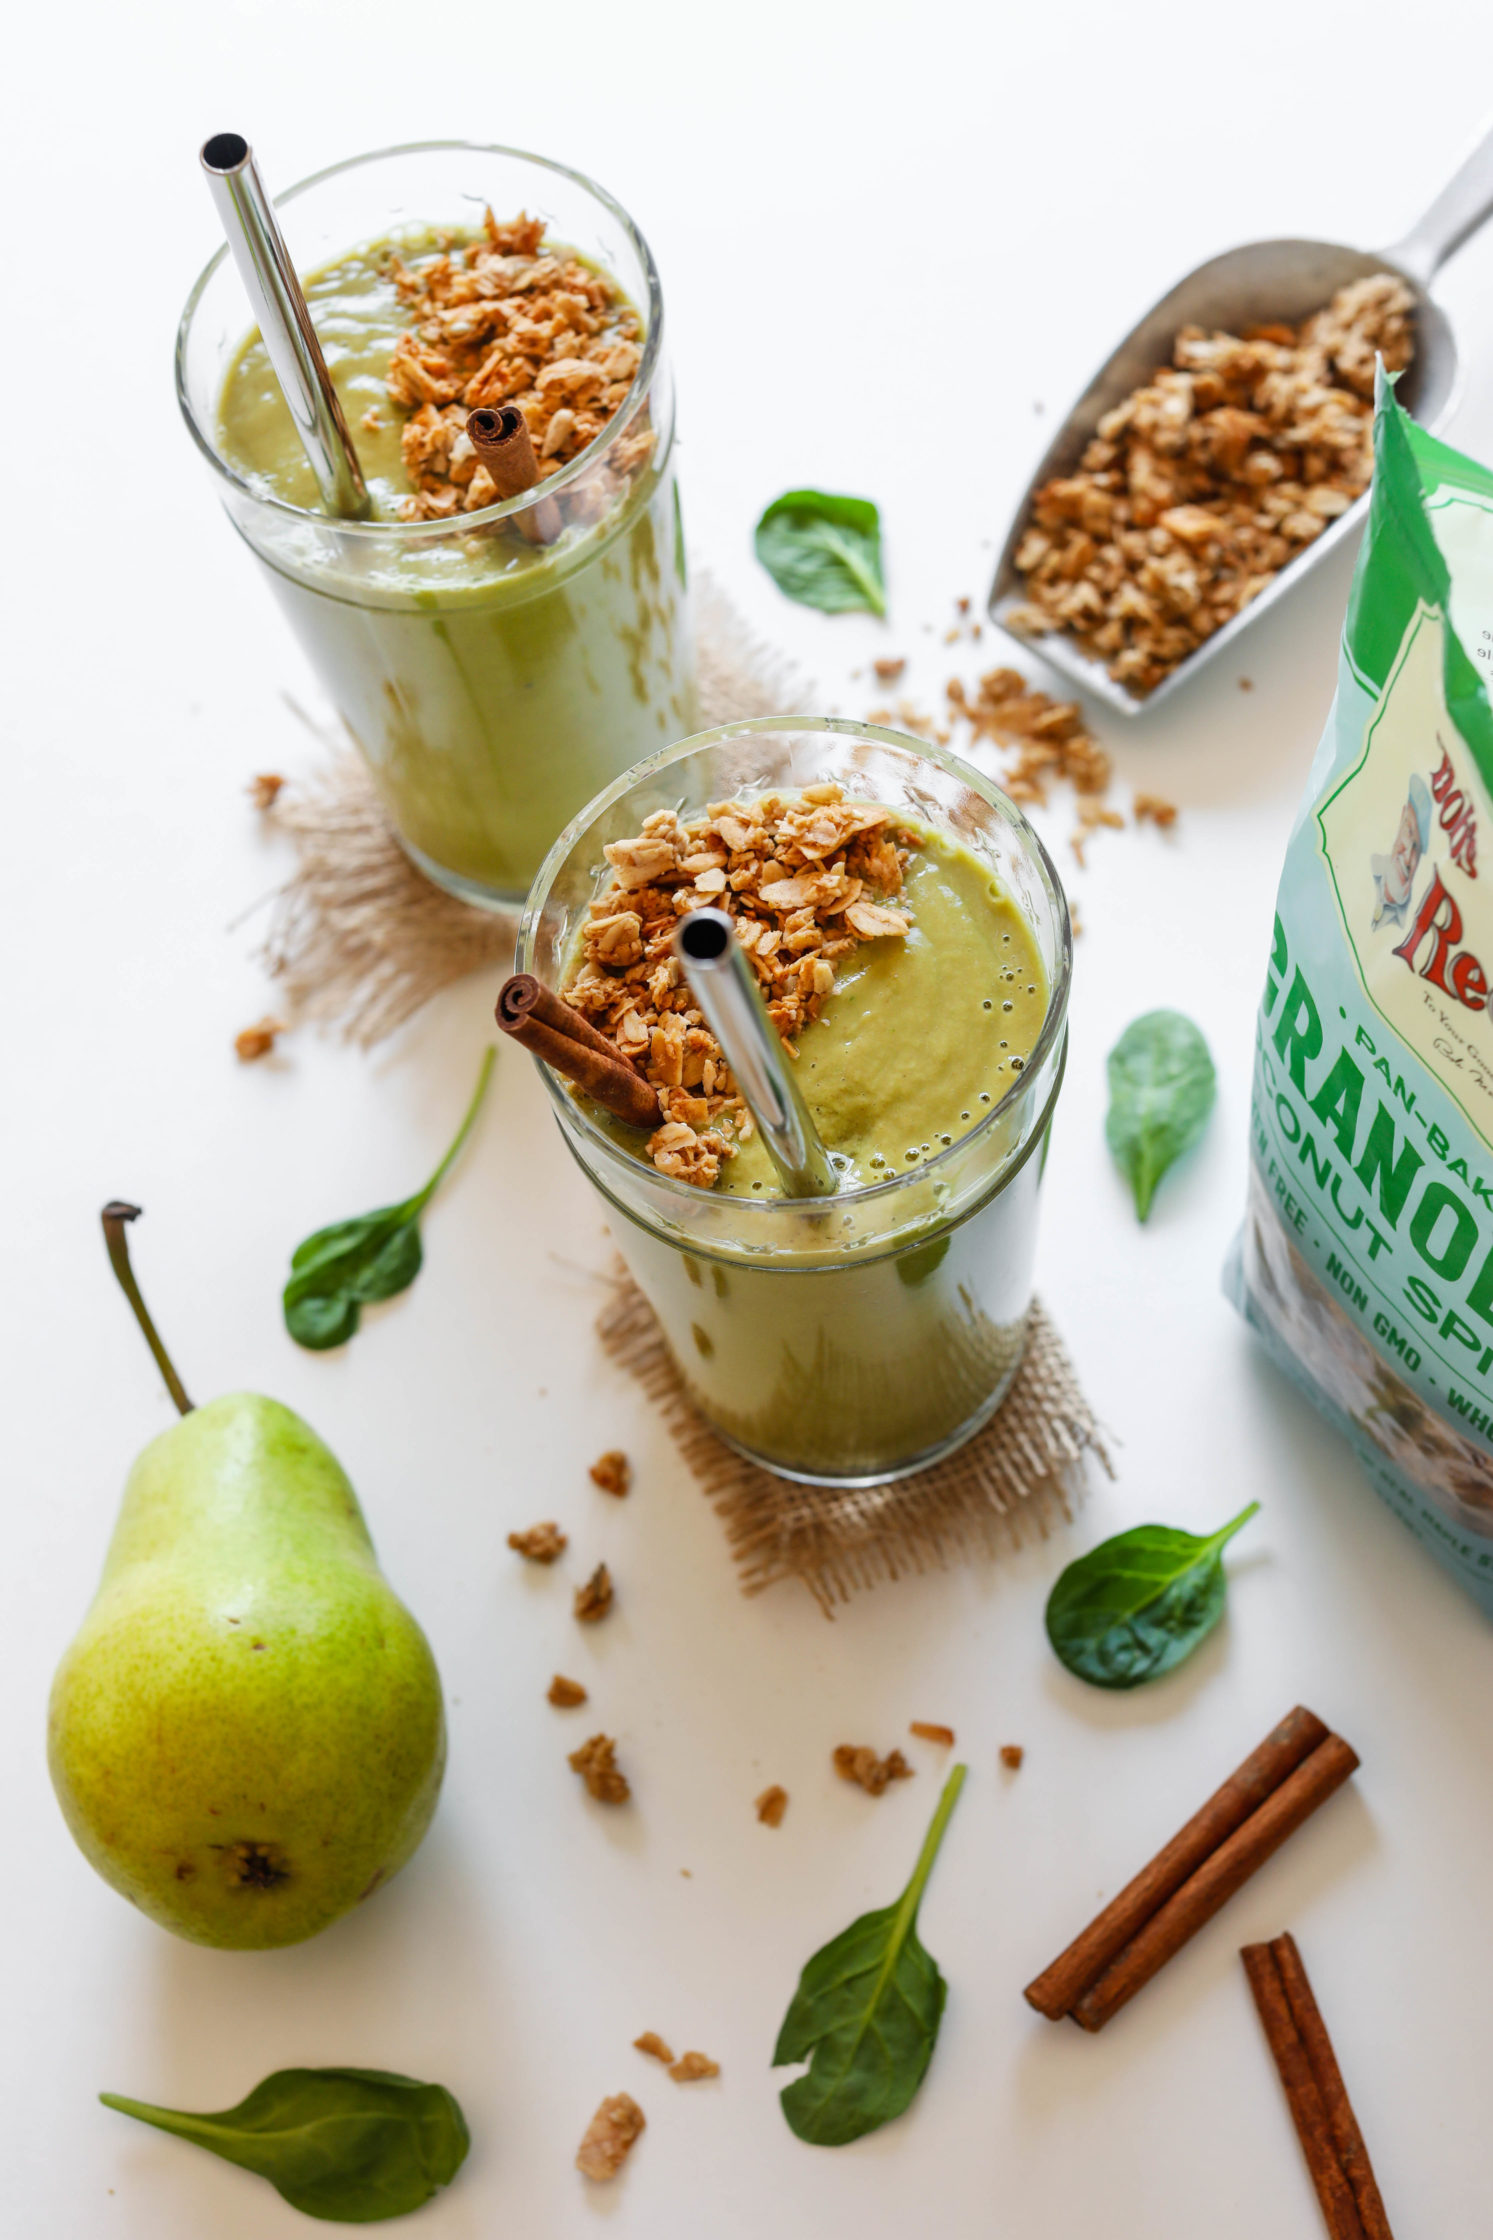 Spiced Green Pear Protein Shake by Flora & Vino